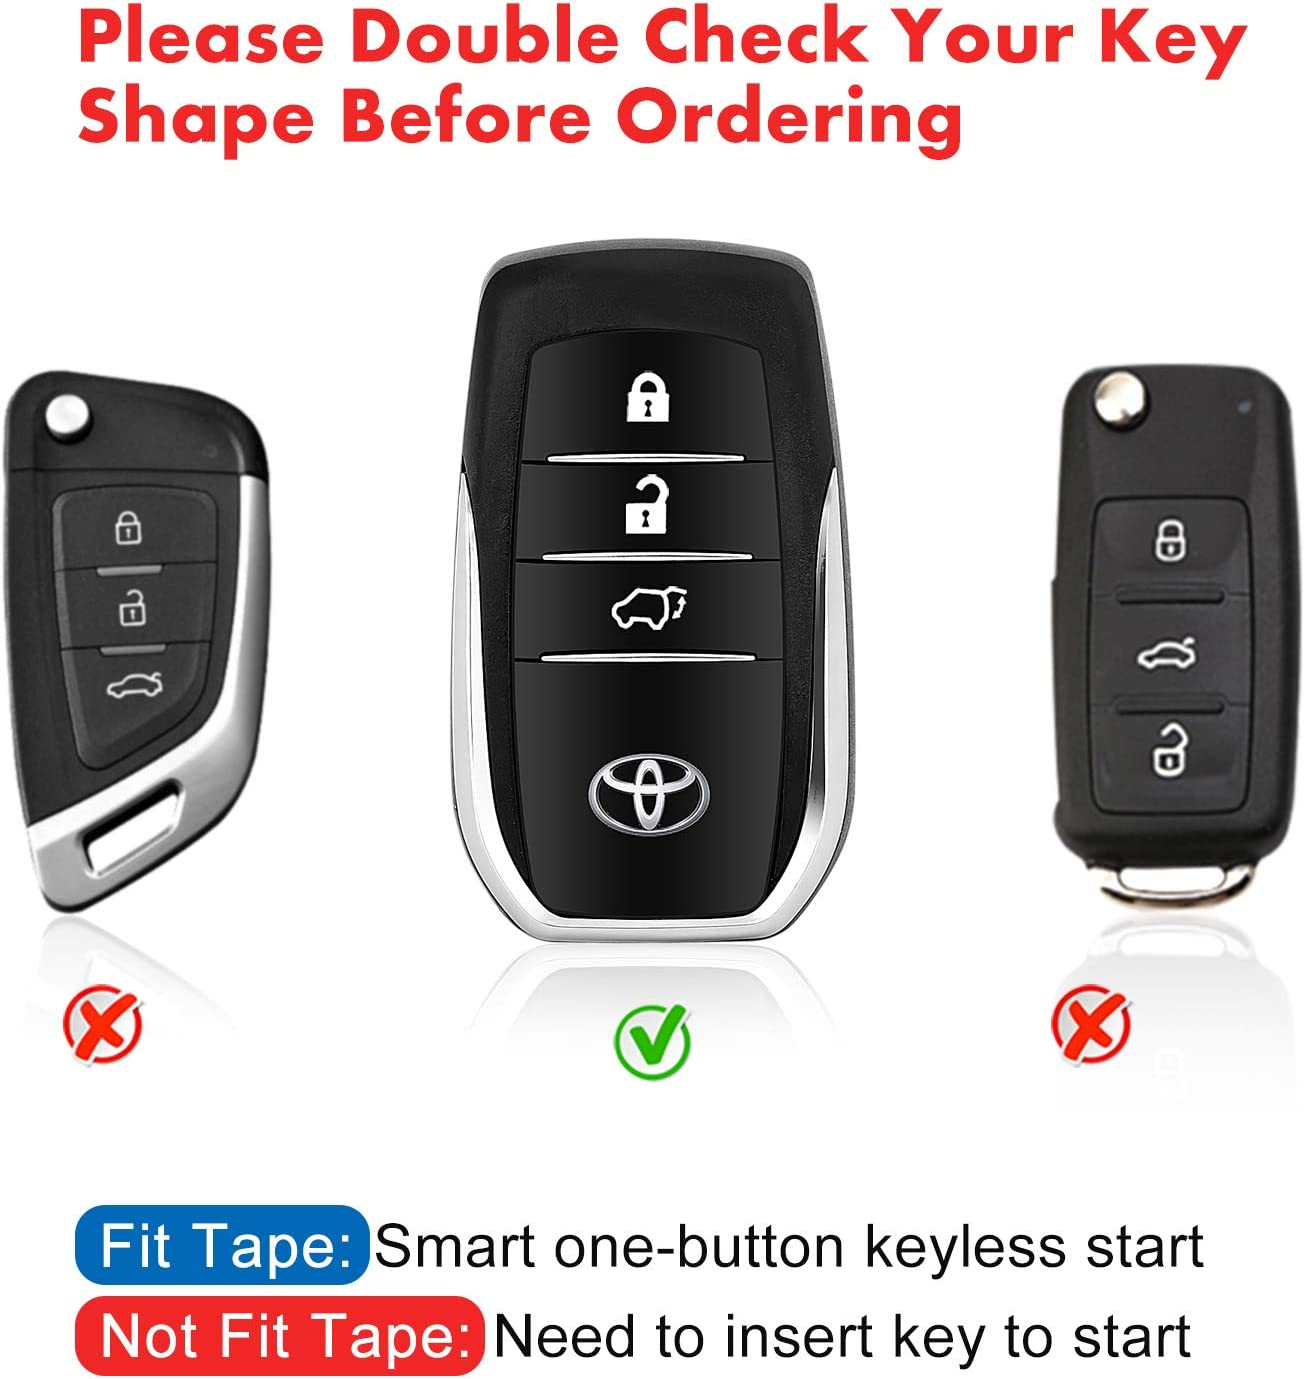 Blue Junwei for Nissan Key Fob Cover Key Fob Case for Nissan Infiniti Teana X-Trail Qashqai Livina Sylphy Premium Soft TPU Full Cover Protection Smart Remote Keyless for 3 Button only